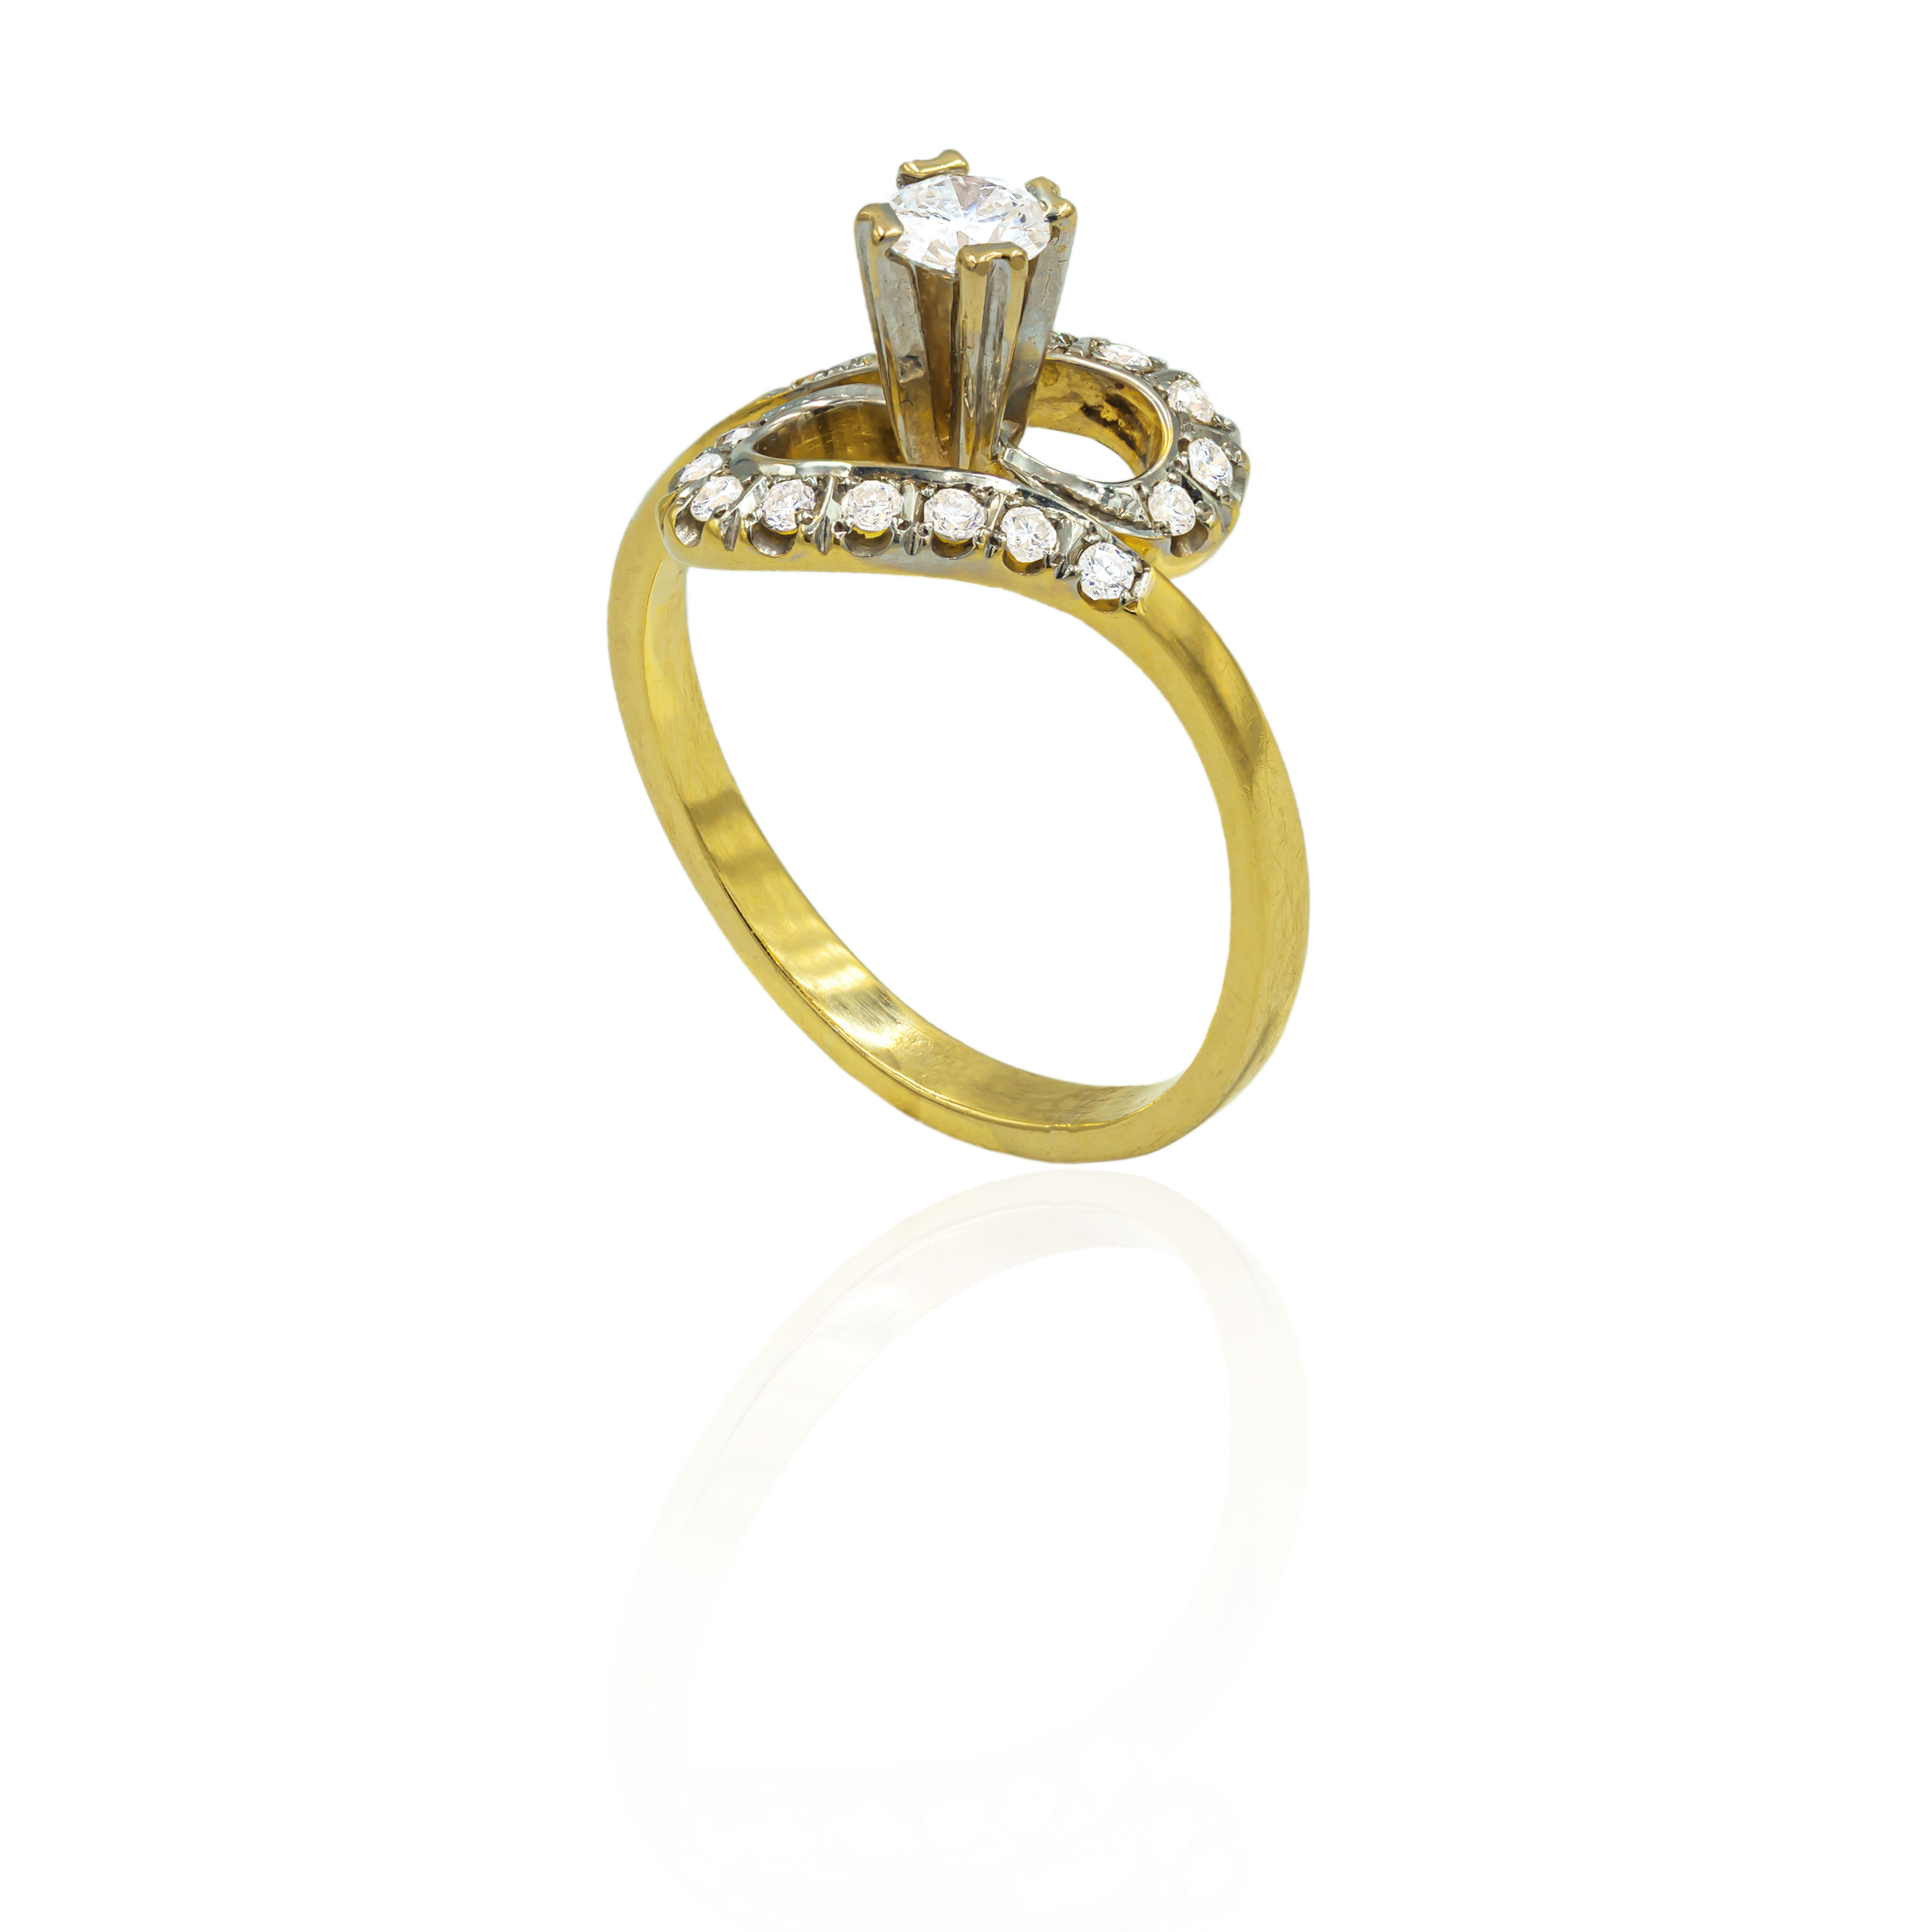 Pre-owned 18ct Yellow Gold Ring With Diamonds